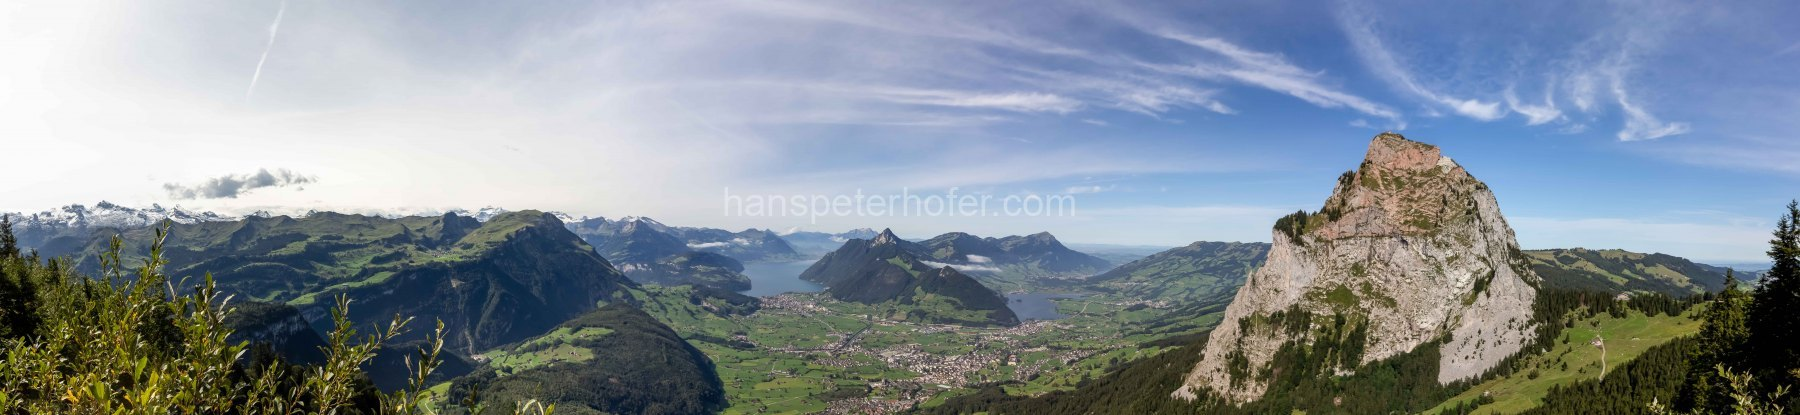 Pano_Rothenfluh-4